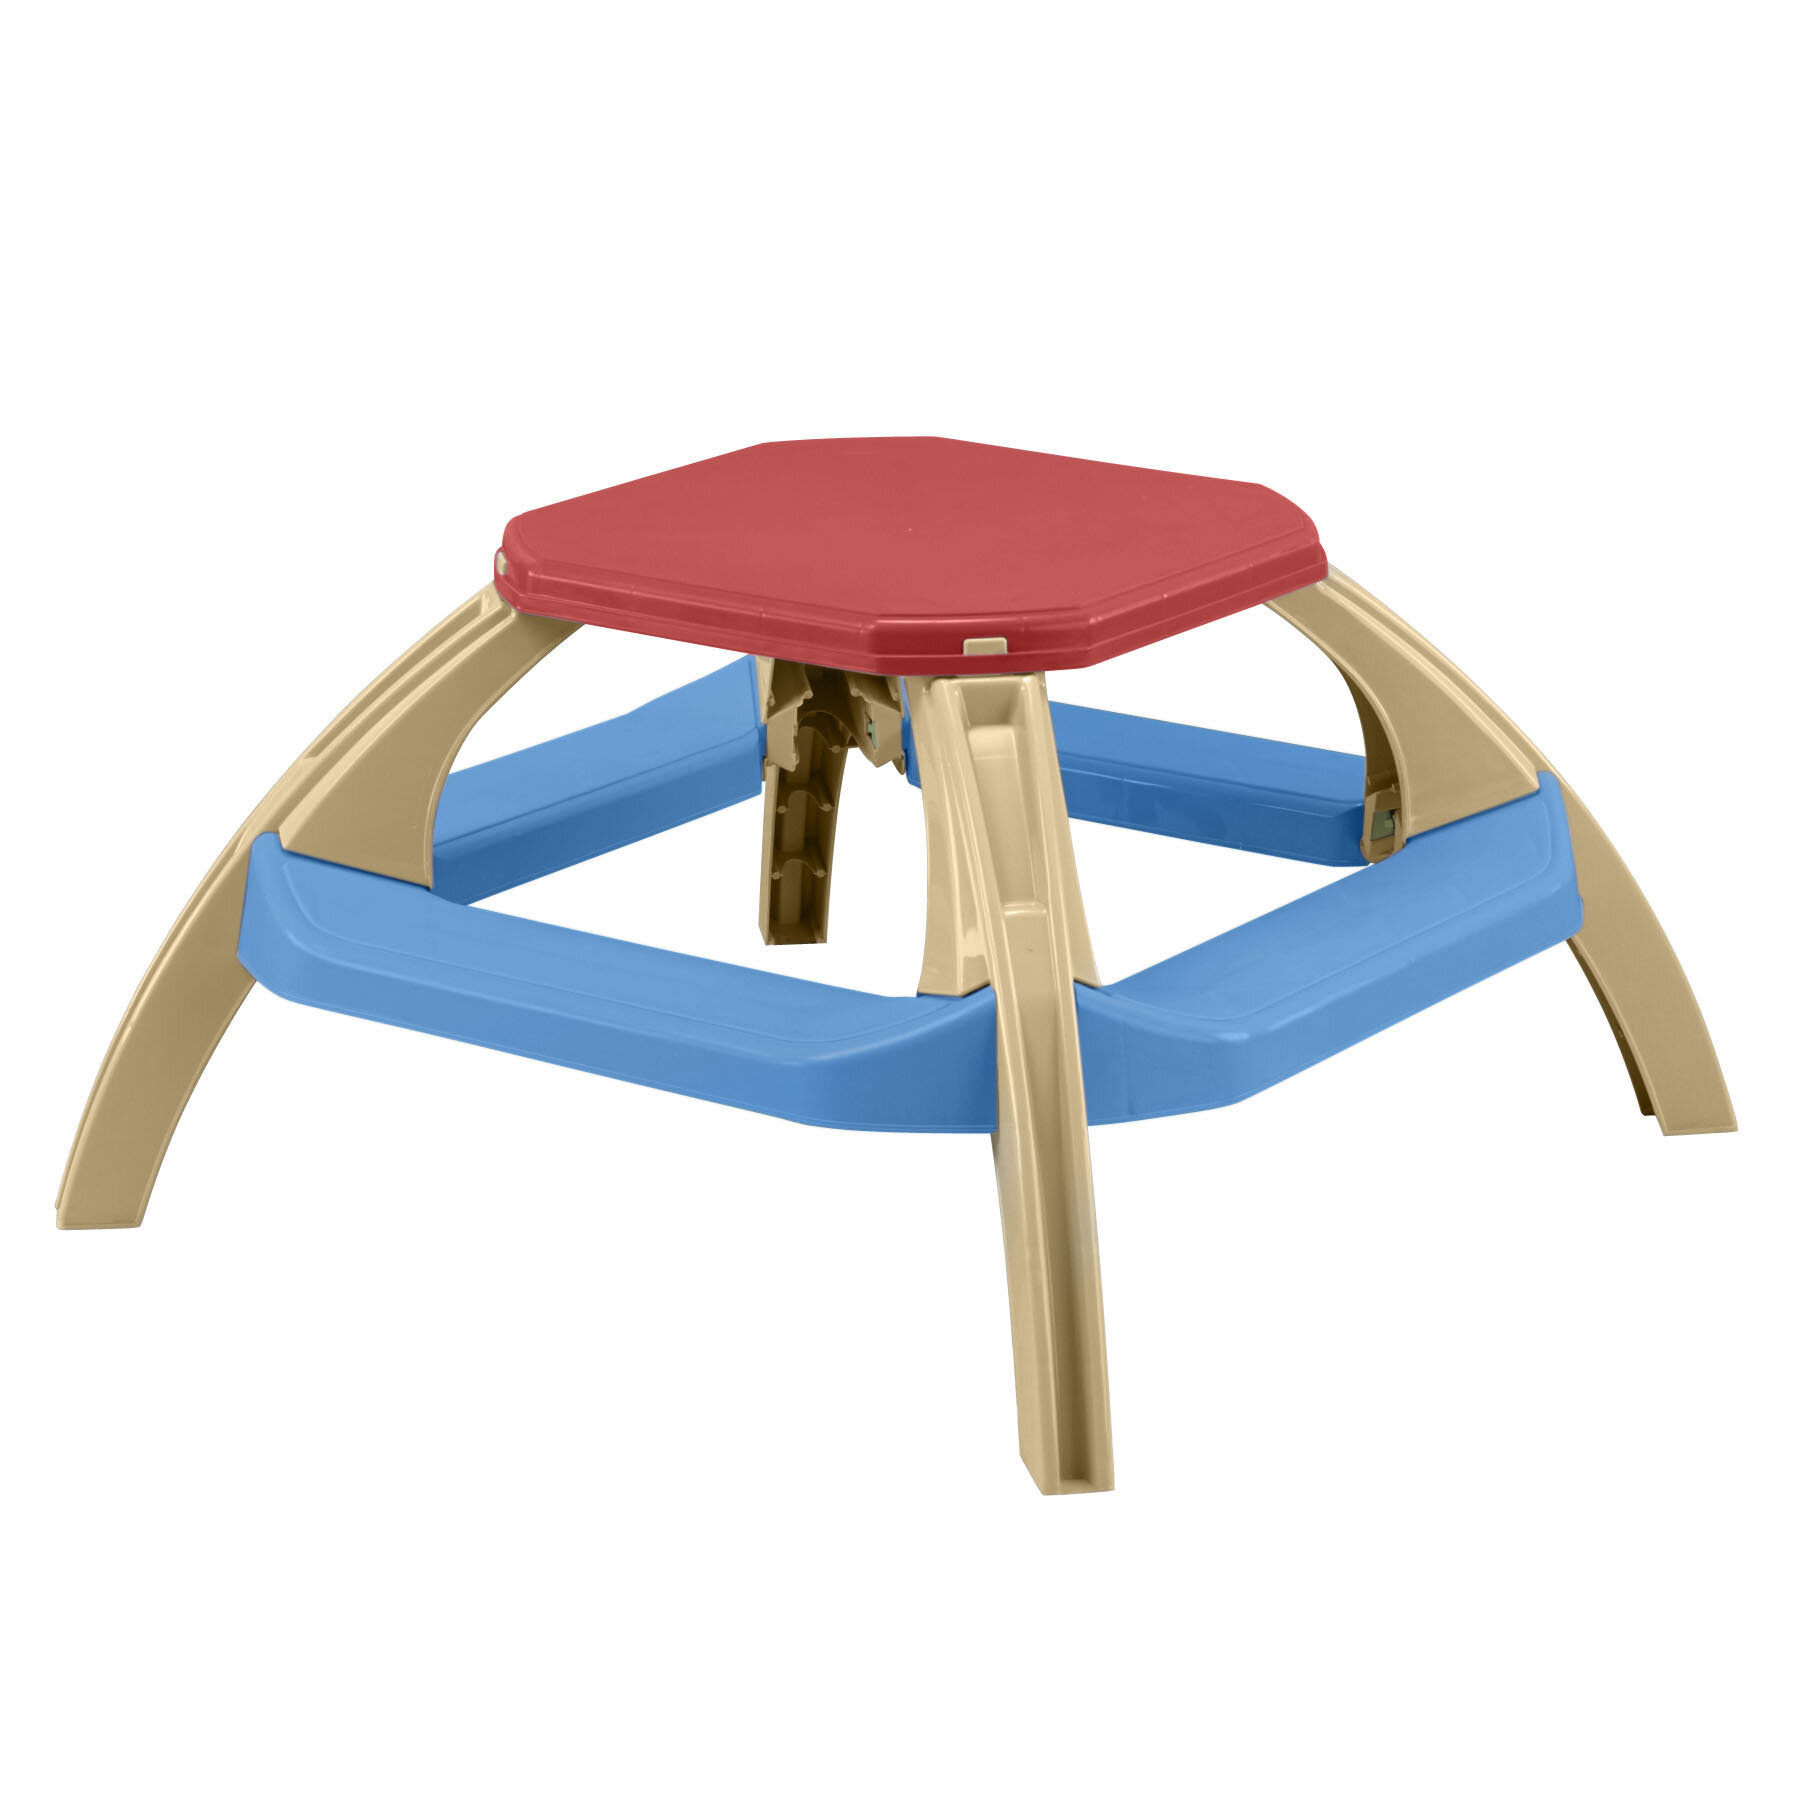 American Plastic Toys Kids Octagon Picnic Table Reviews Wayfair - Composite octagon picnic table